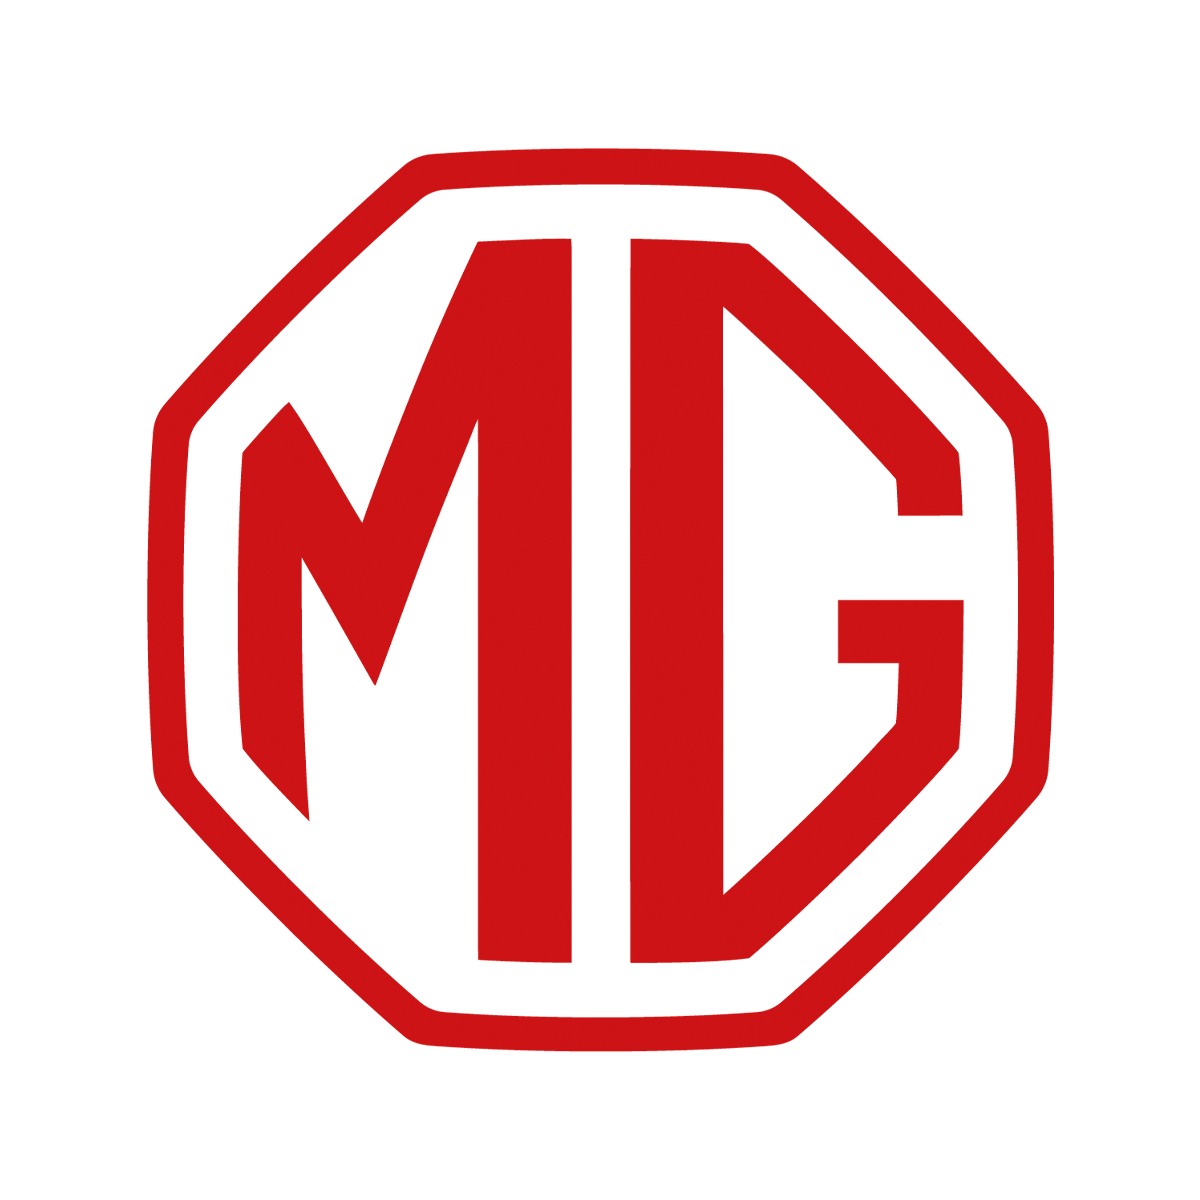 MG: a new logo for a new era